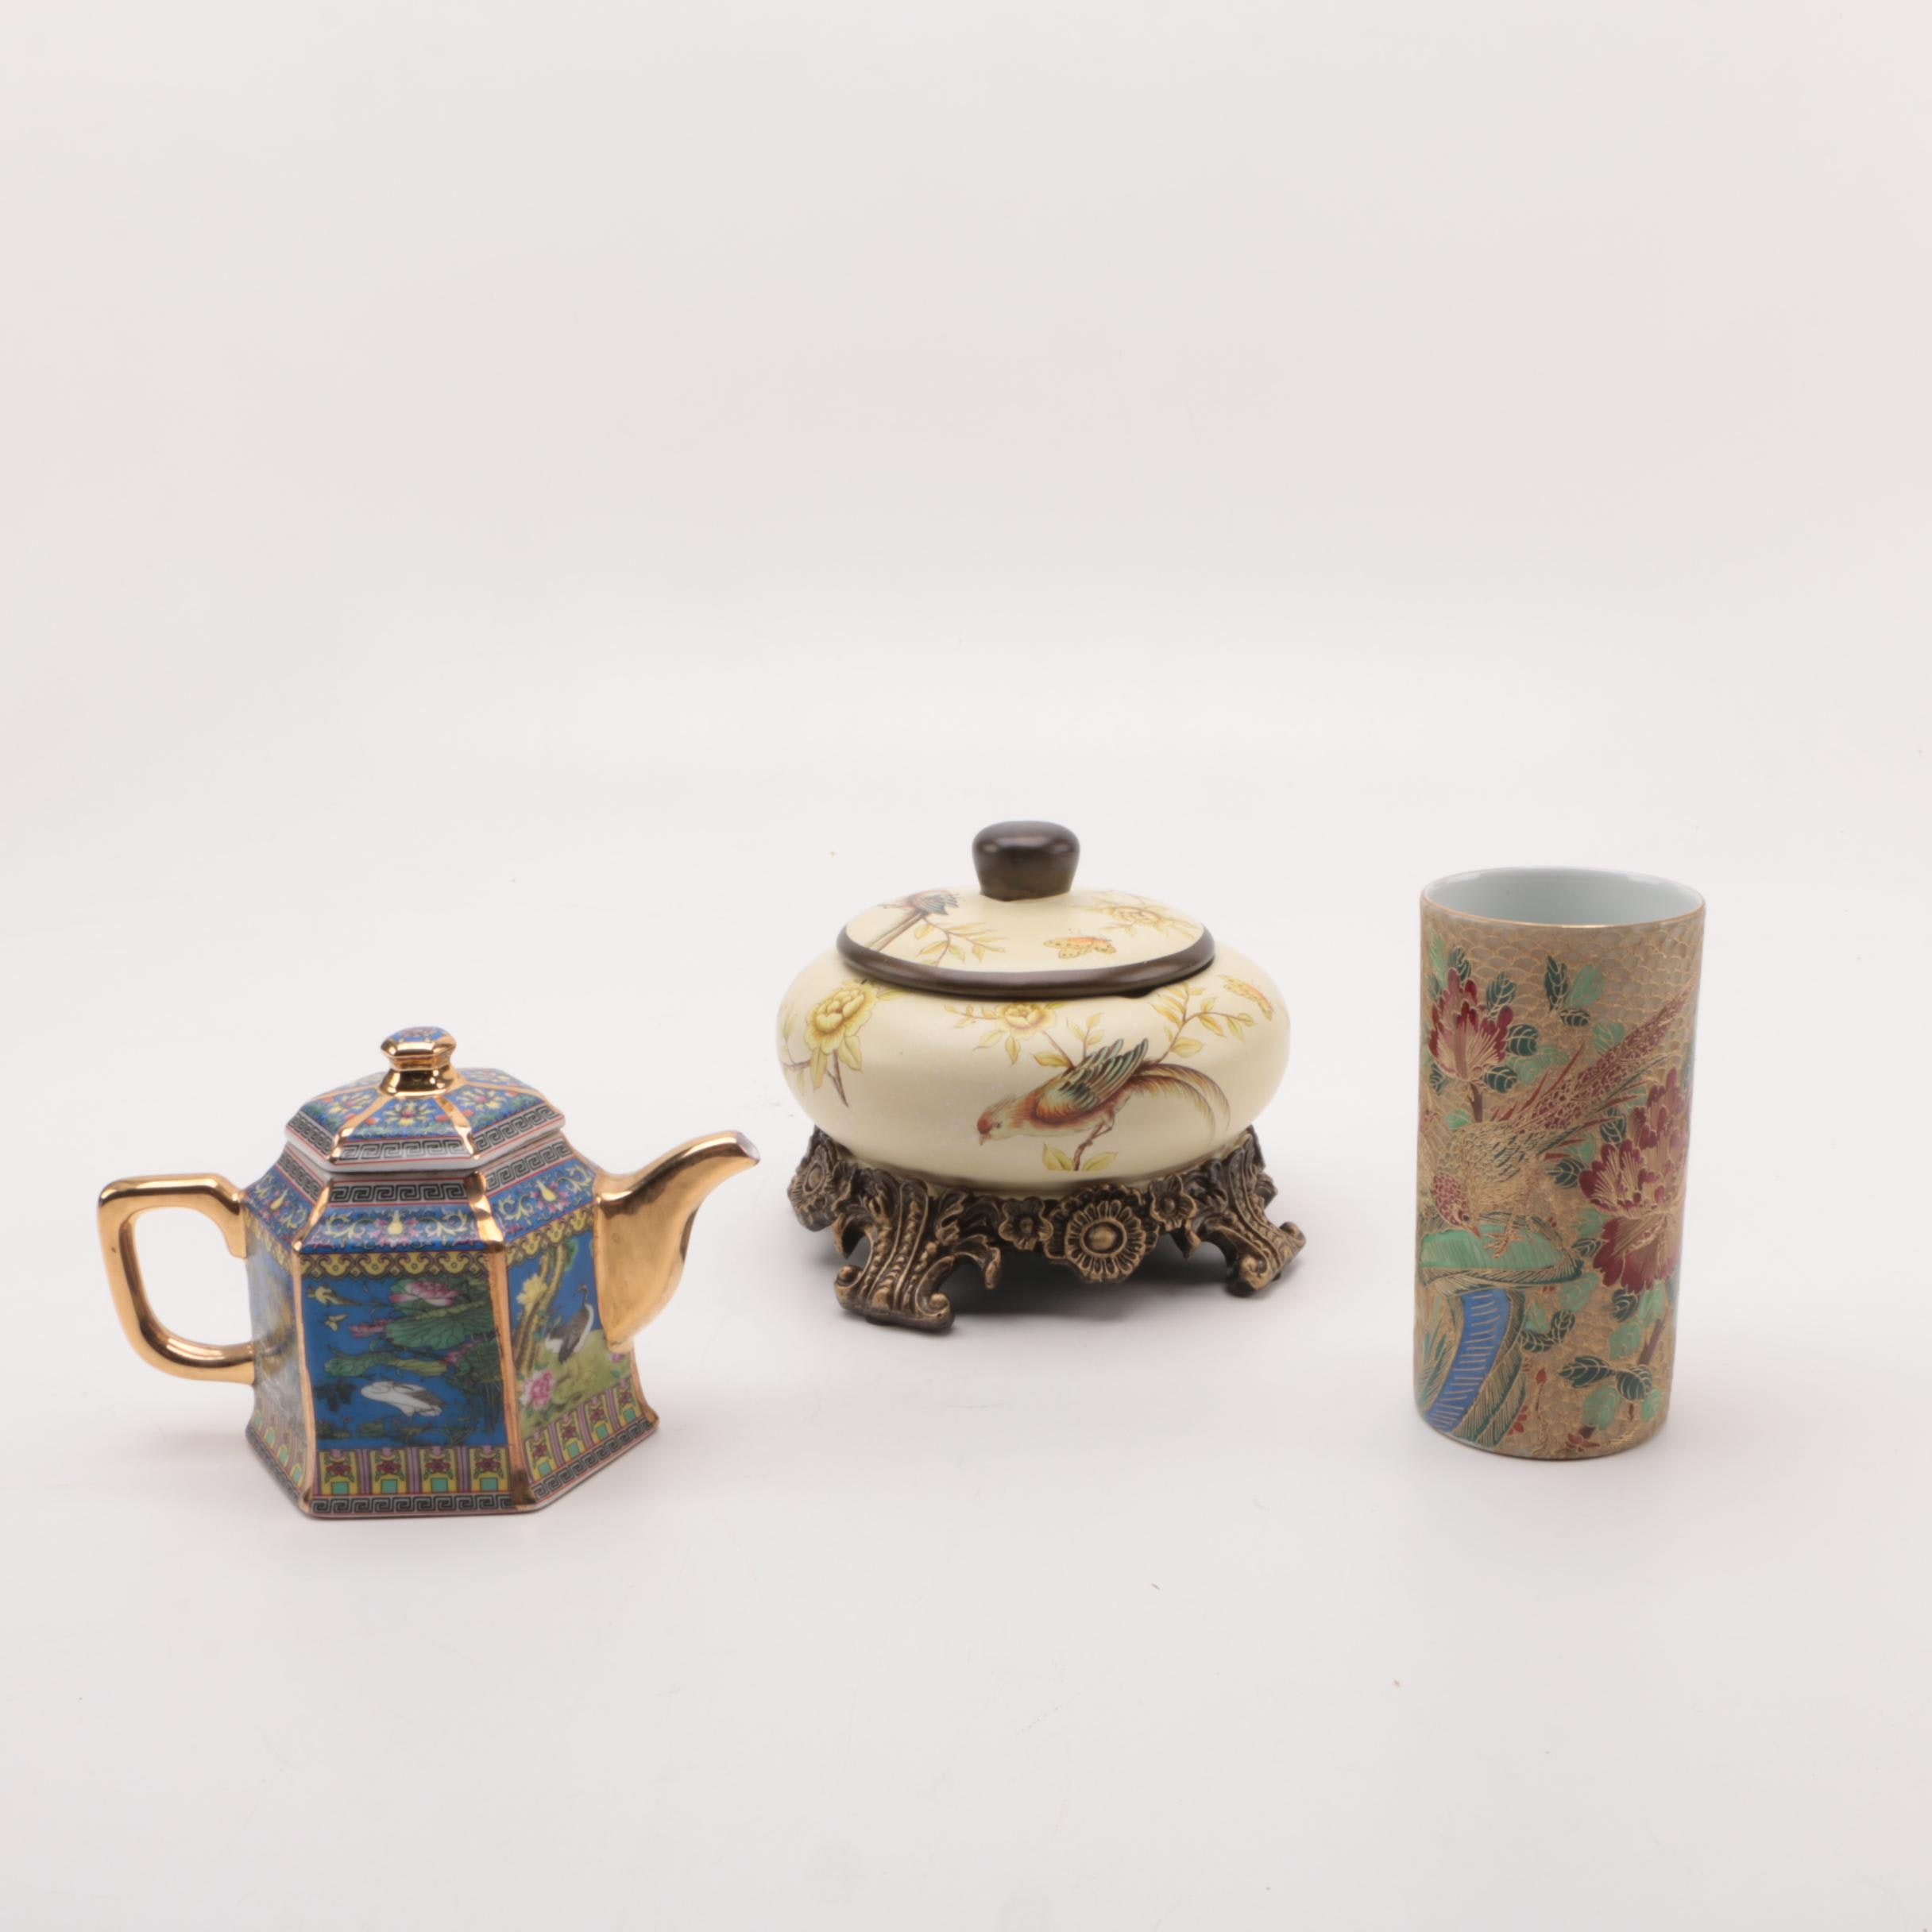 Chinese Porcelain Vase, Teapot and a Lidded Bowl